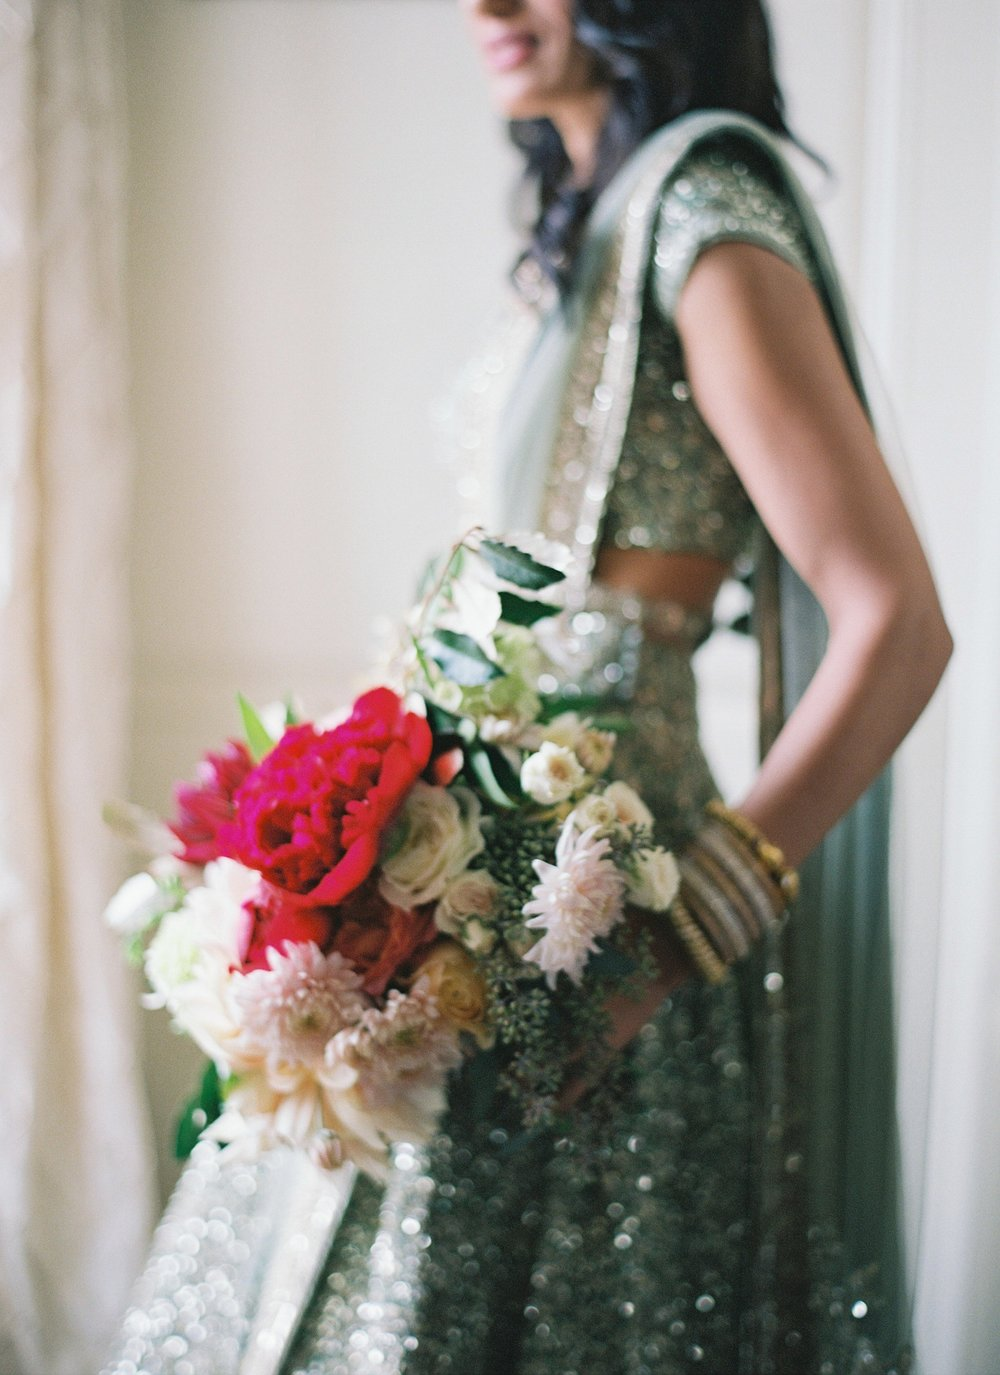 khurana_wedding00168(1).jpg